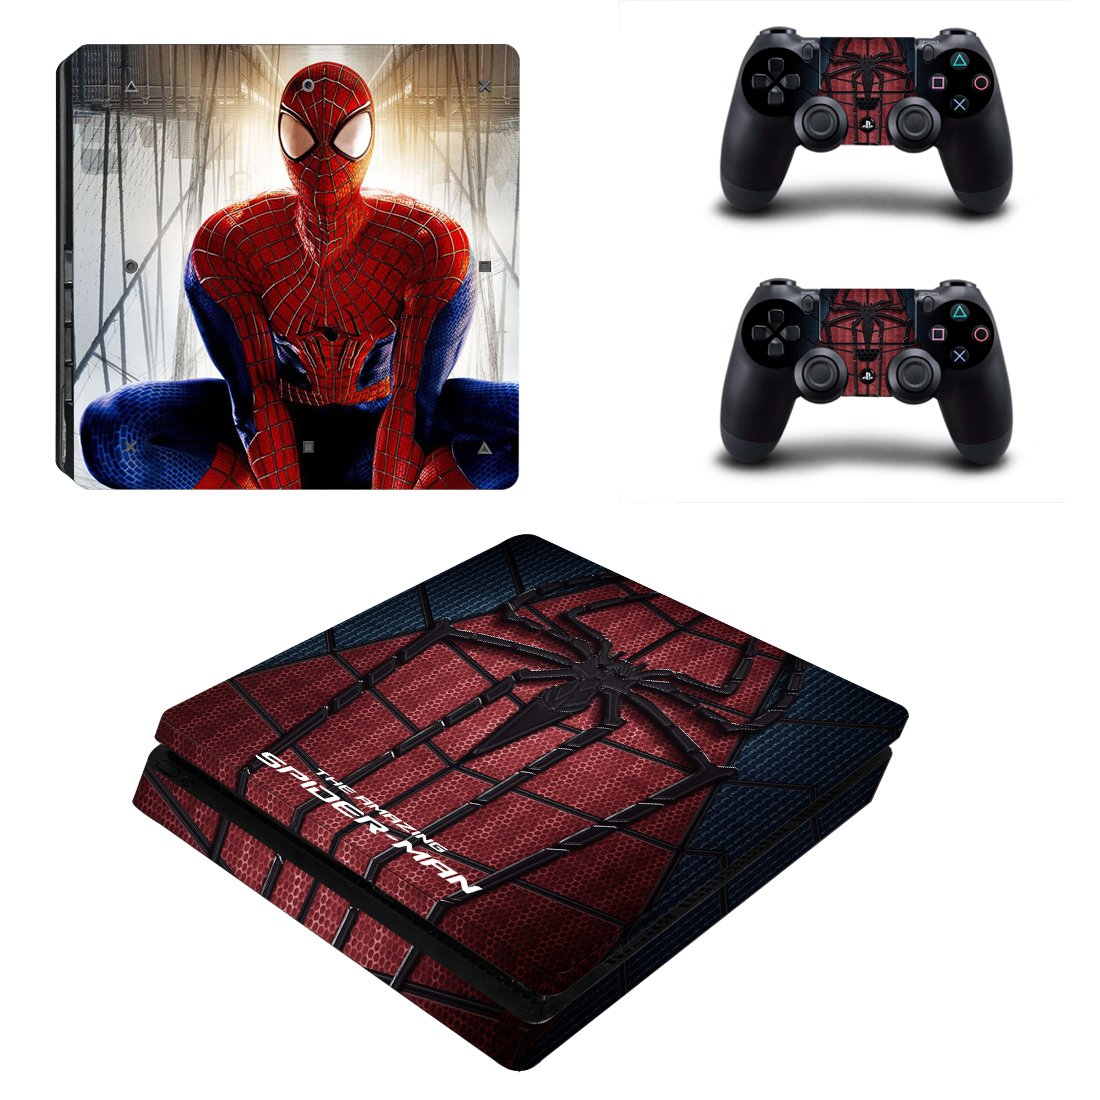 Spider-Man PS4 Slim Skin Sticker Wrap